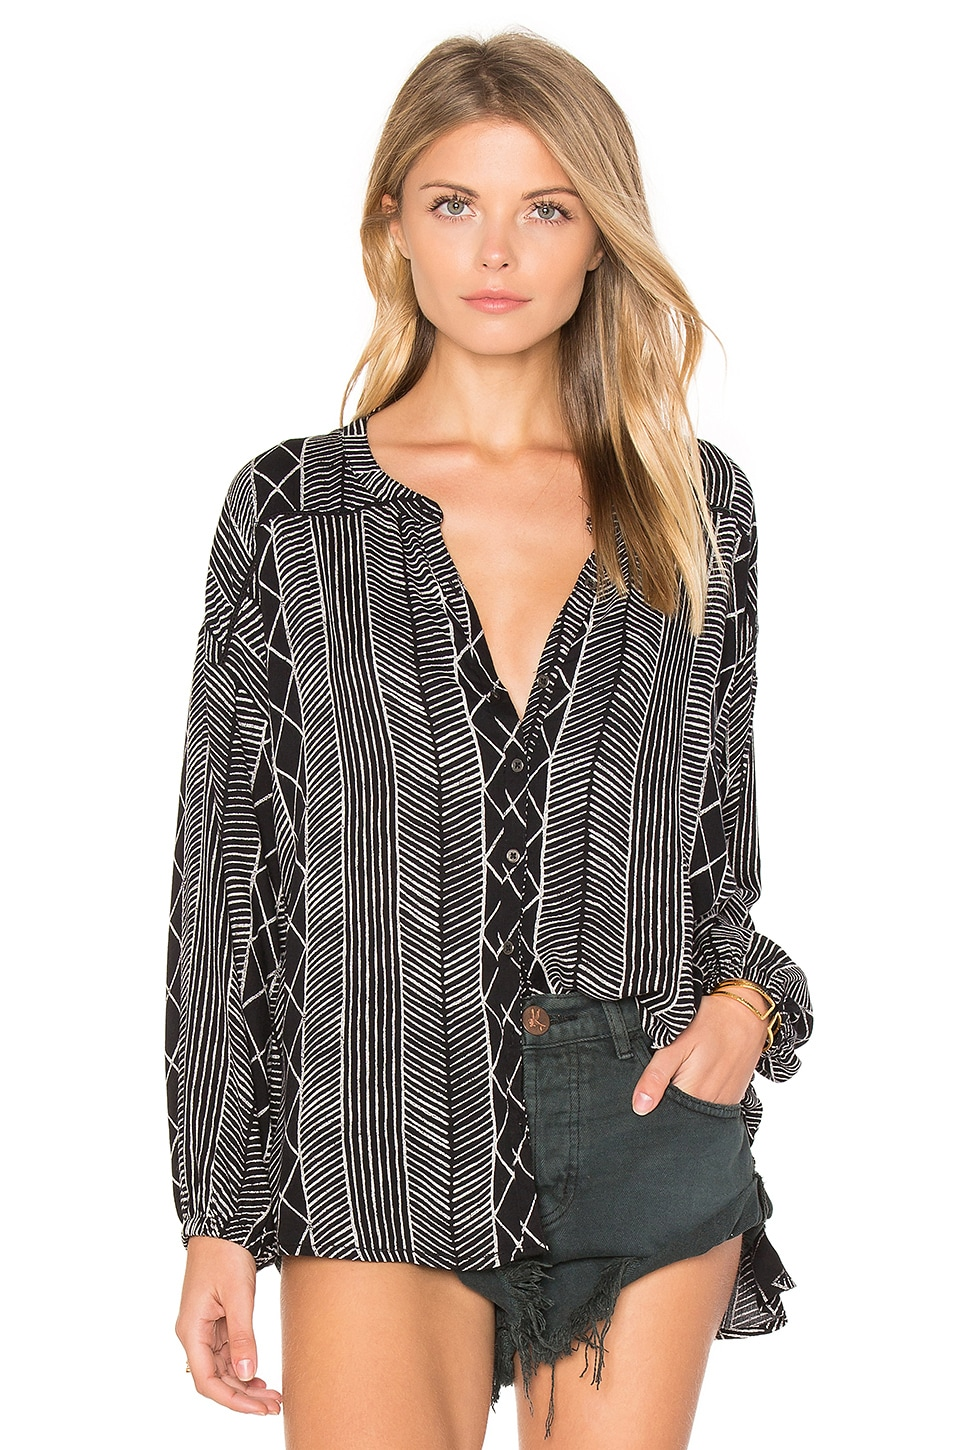 AMUSE SOCIETY Spellbound Woven Top in Black Sands